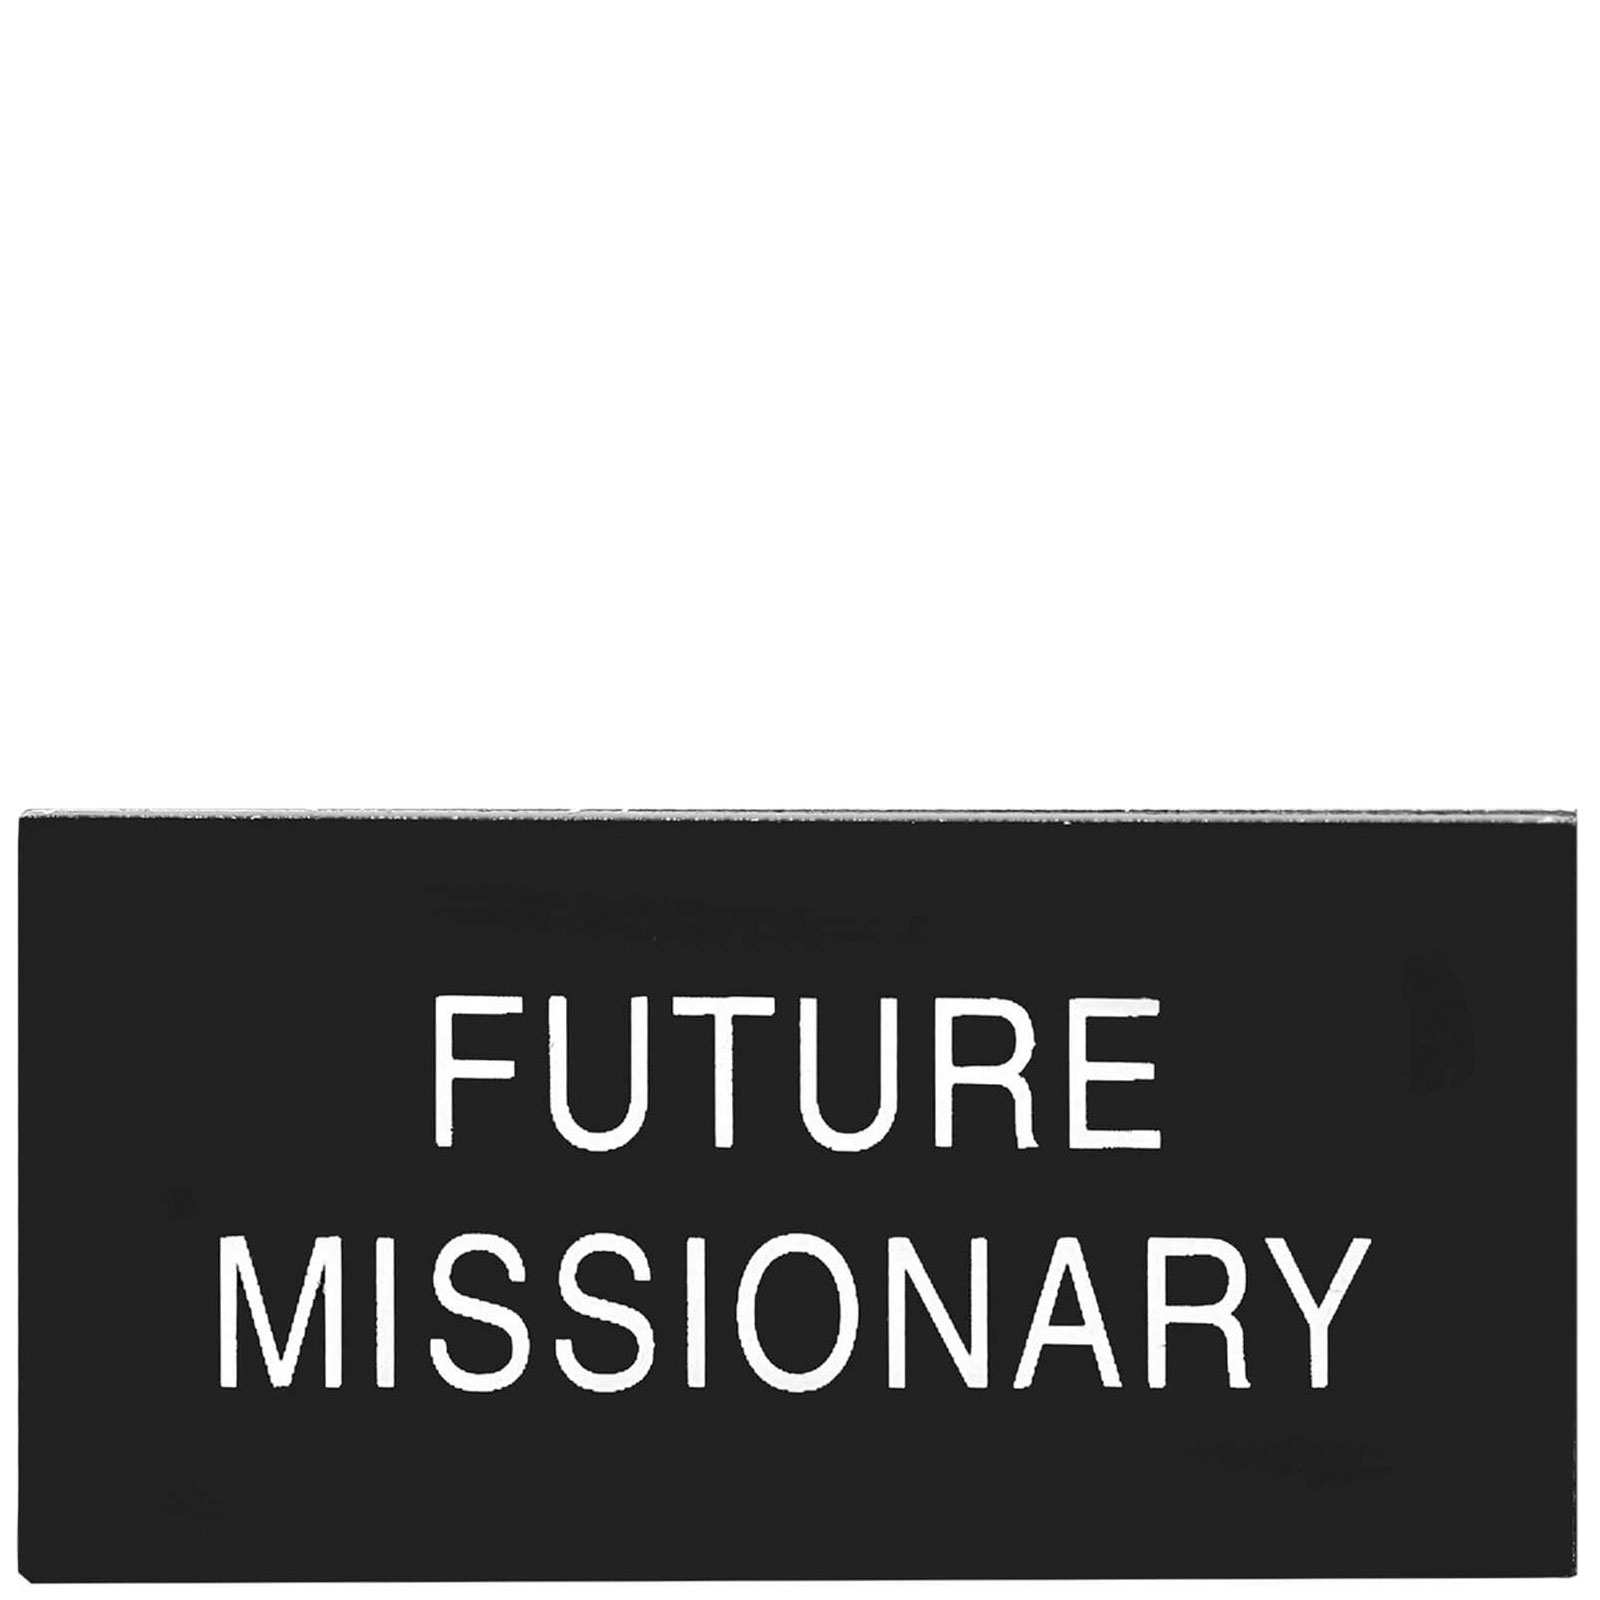 image regarding Future Missionary Tag Printable named Long run Missionary Badge